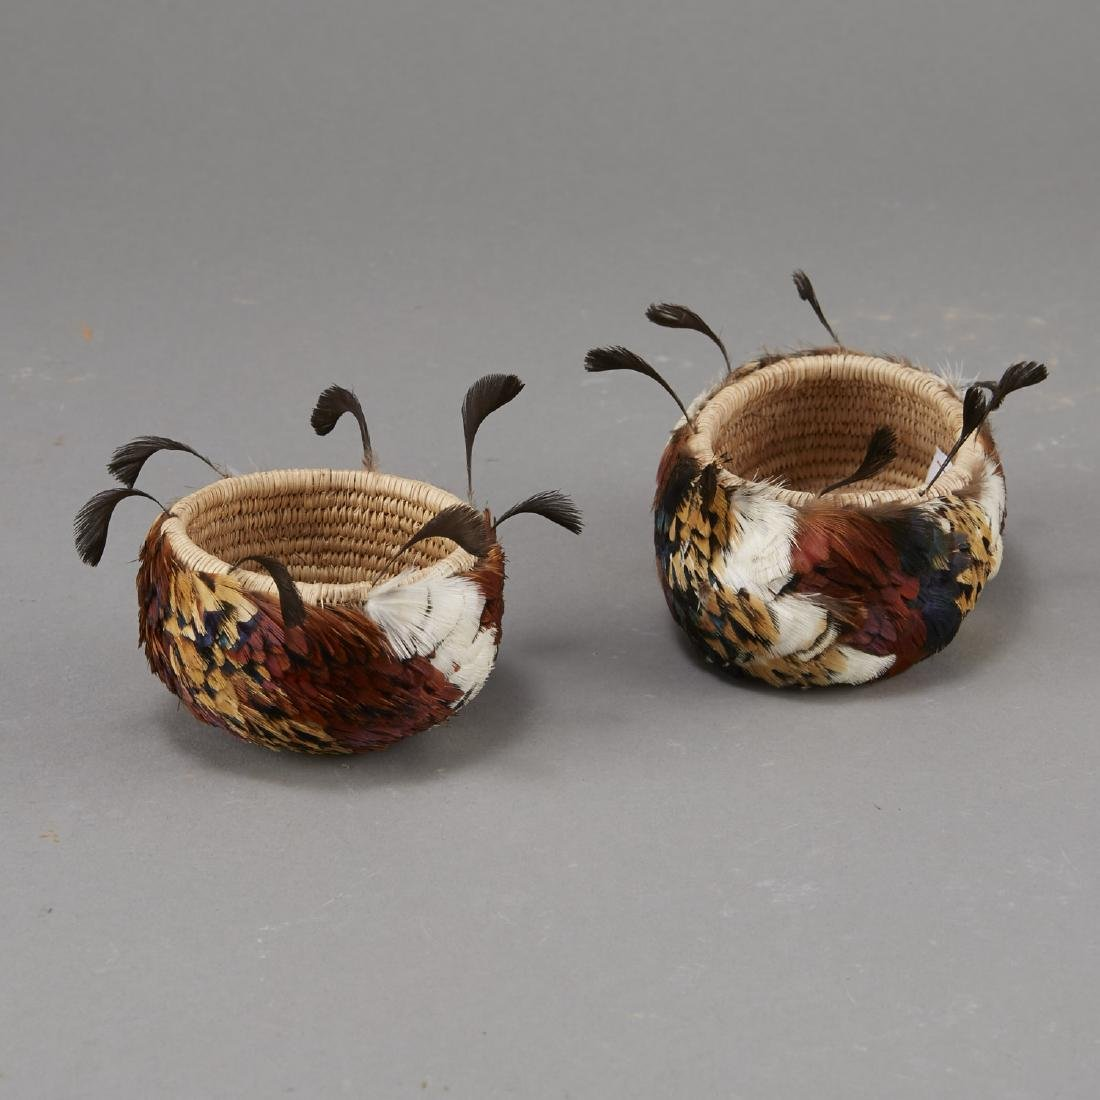 Group of 2 Feathered Pomo Baskets - 4